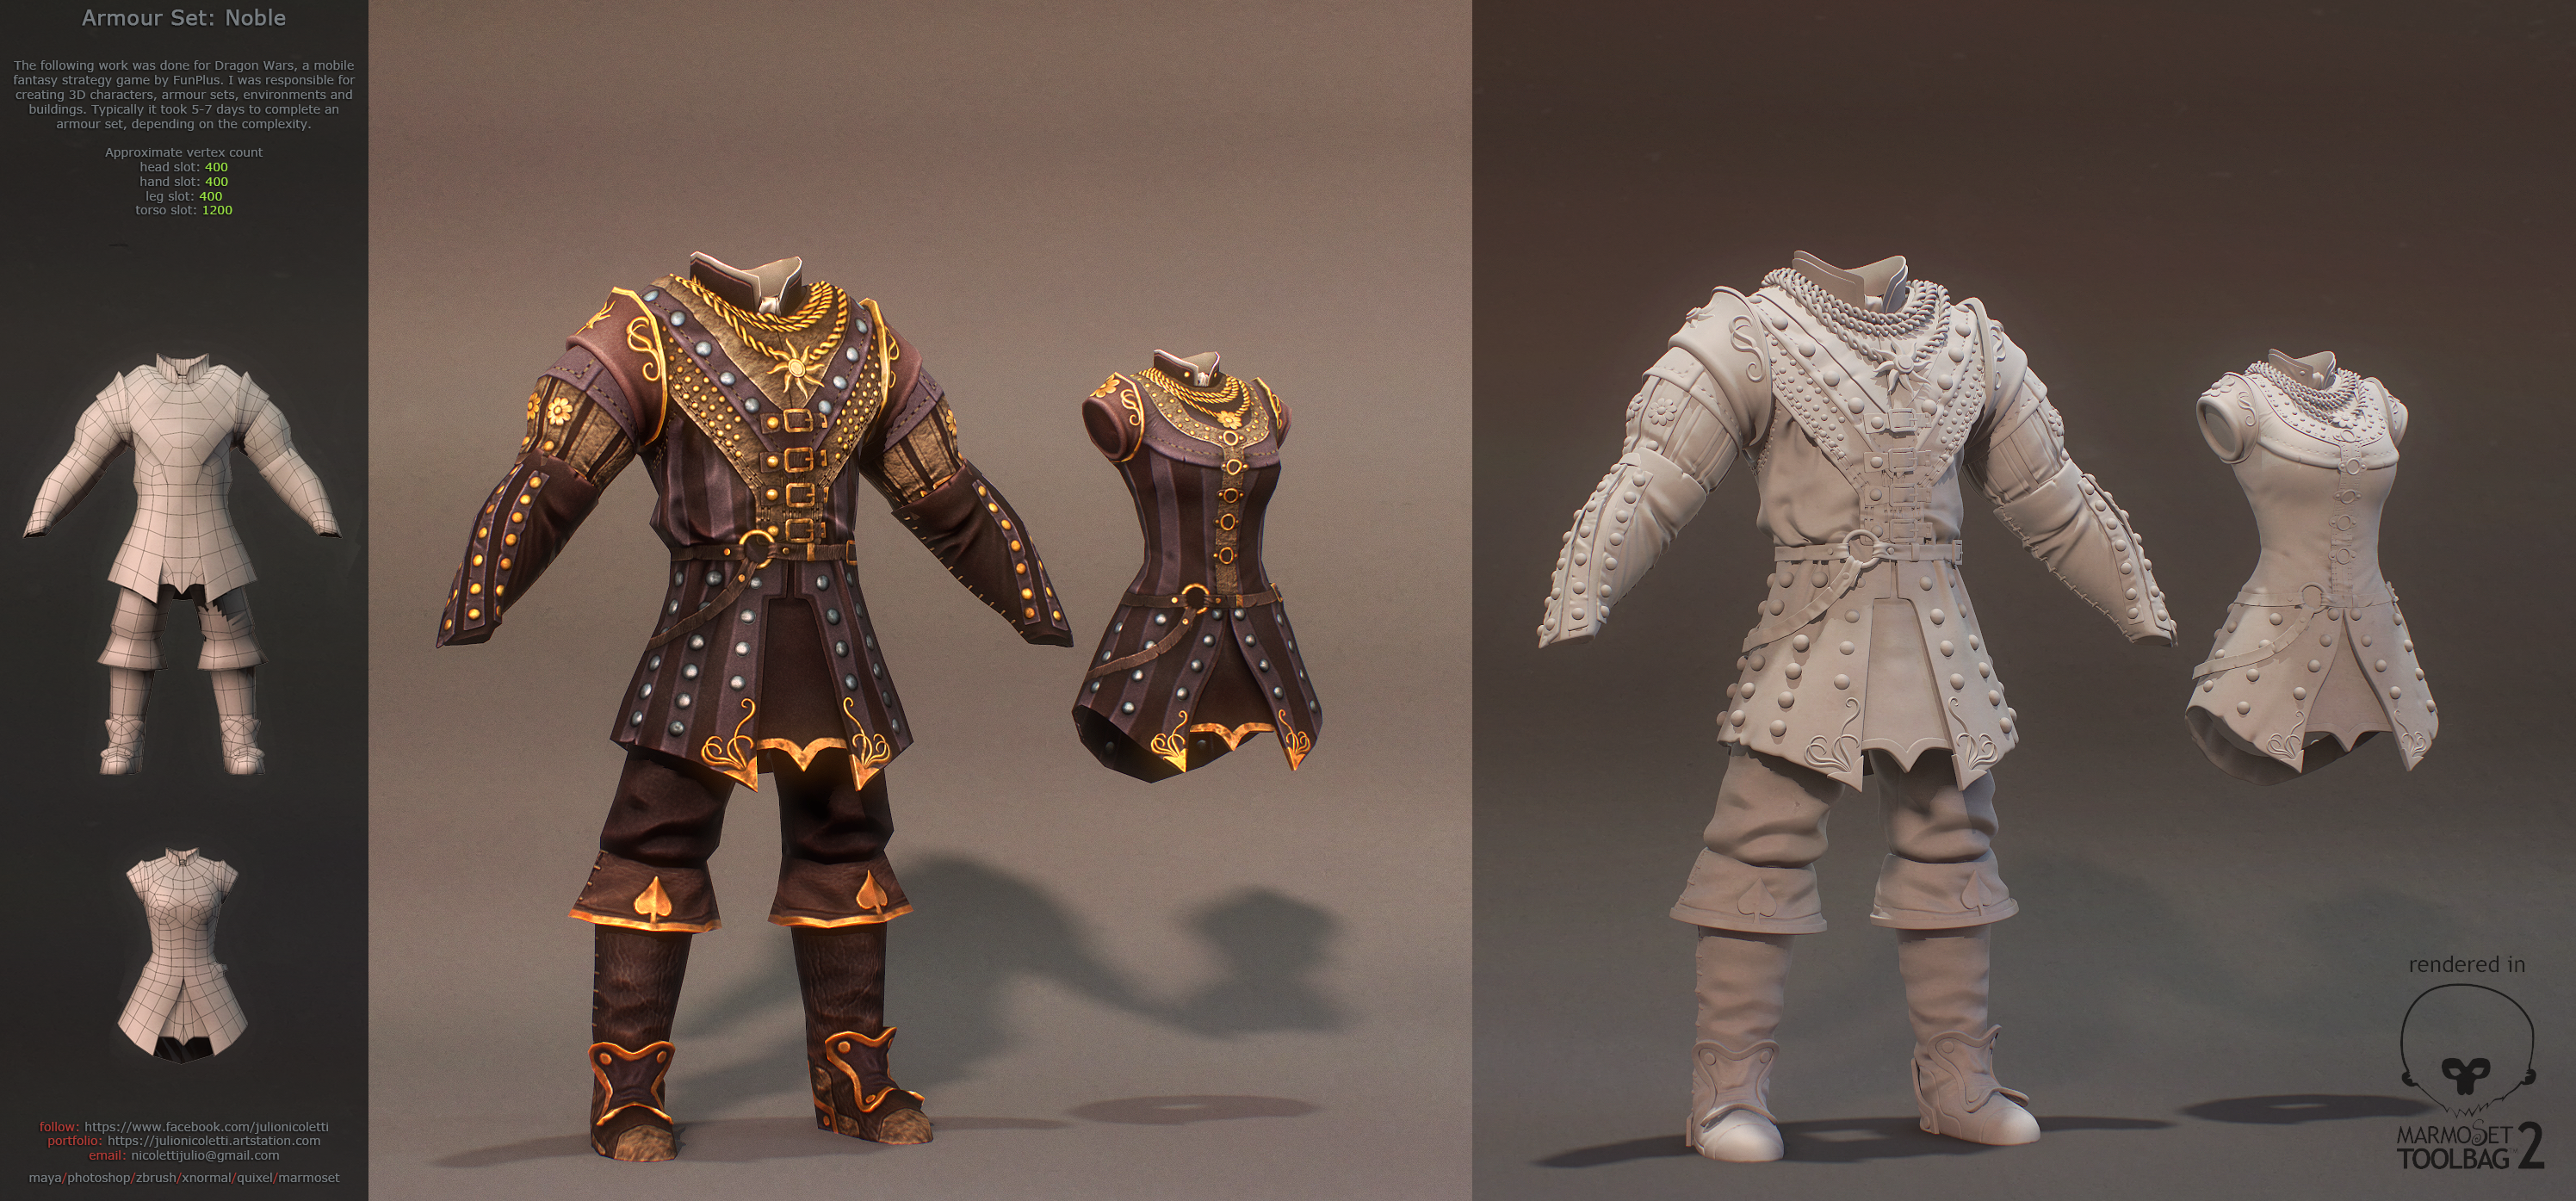 armour_set__noble_by_julionicoletti-d942aba.png